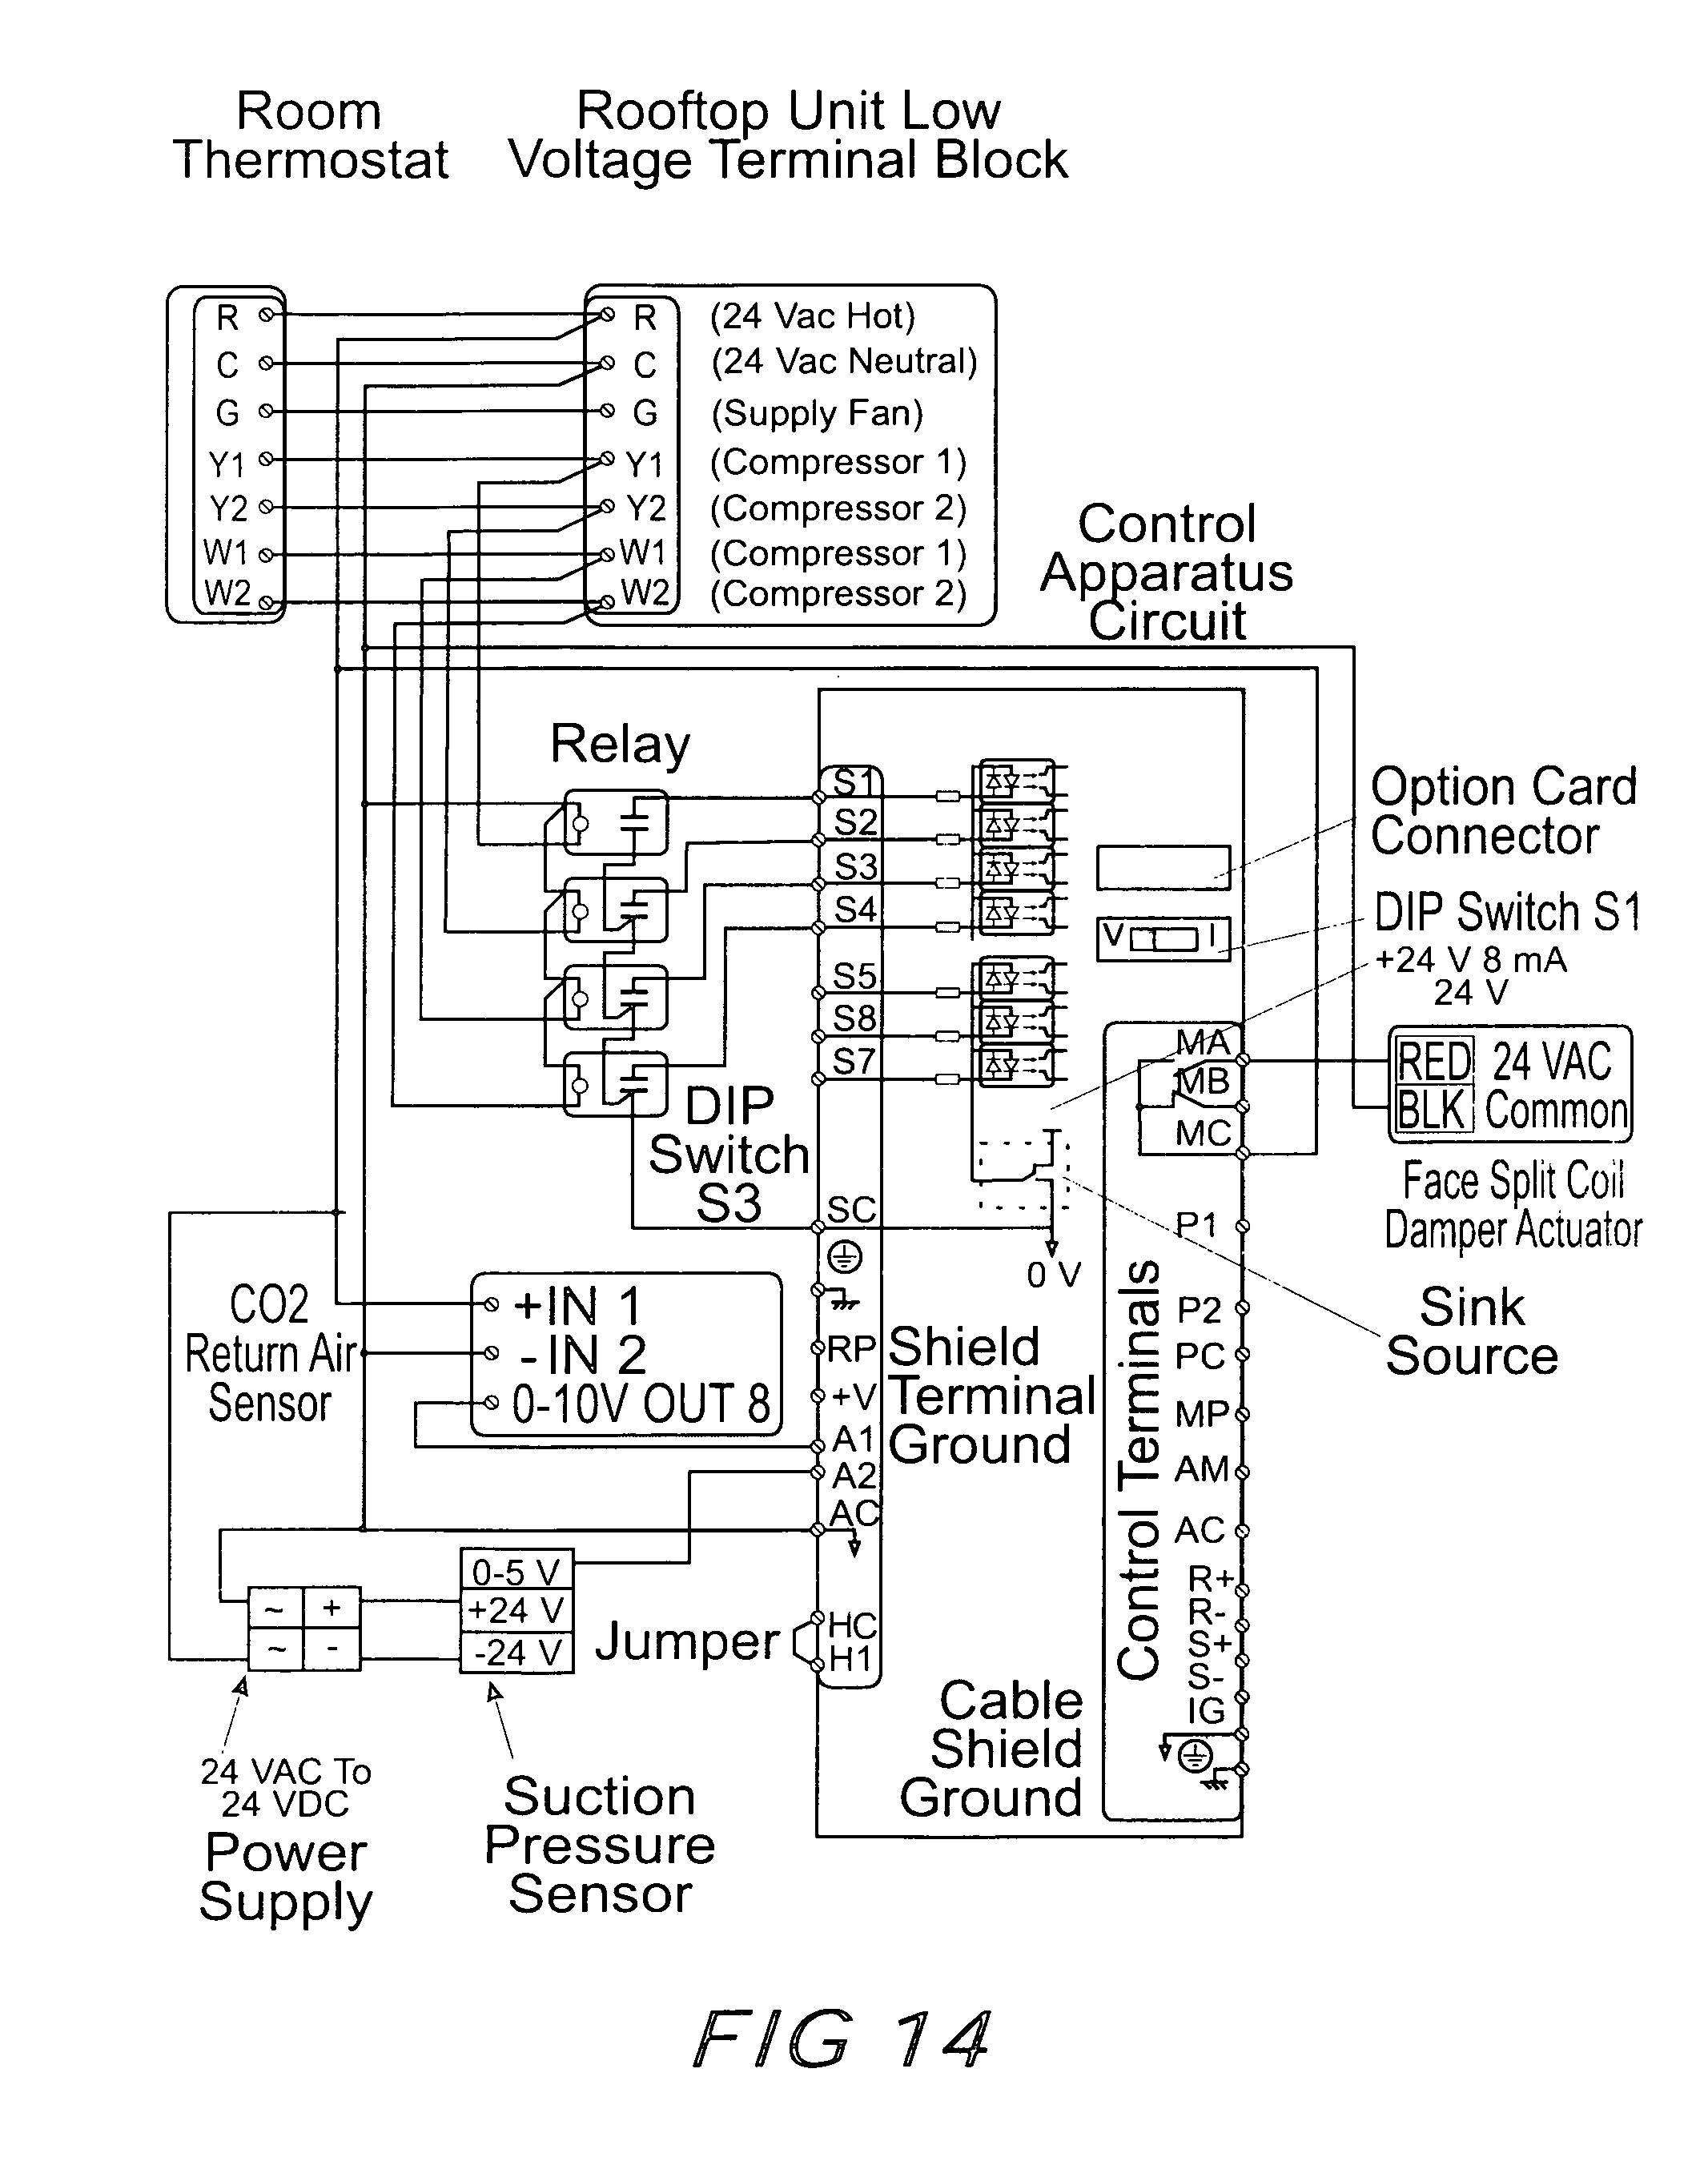 Aaon Rooftop Units Troubleshooting Wiring Schematics